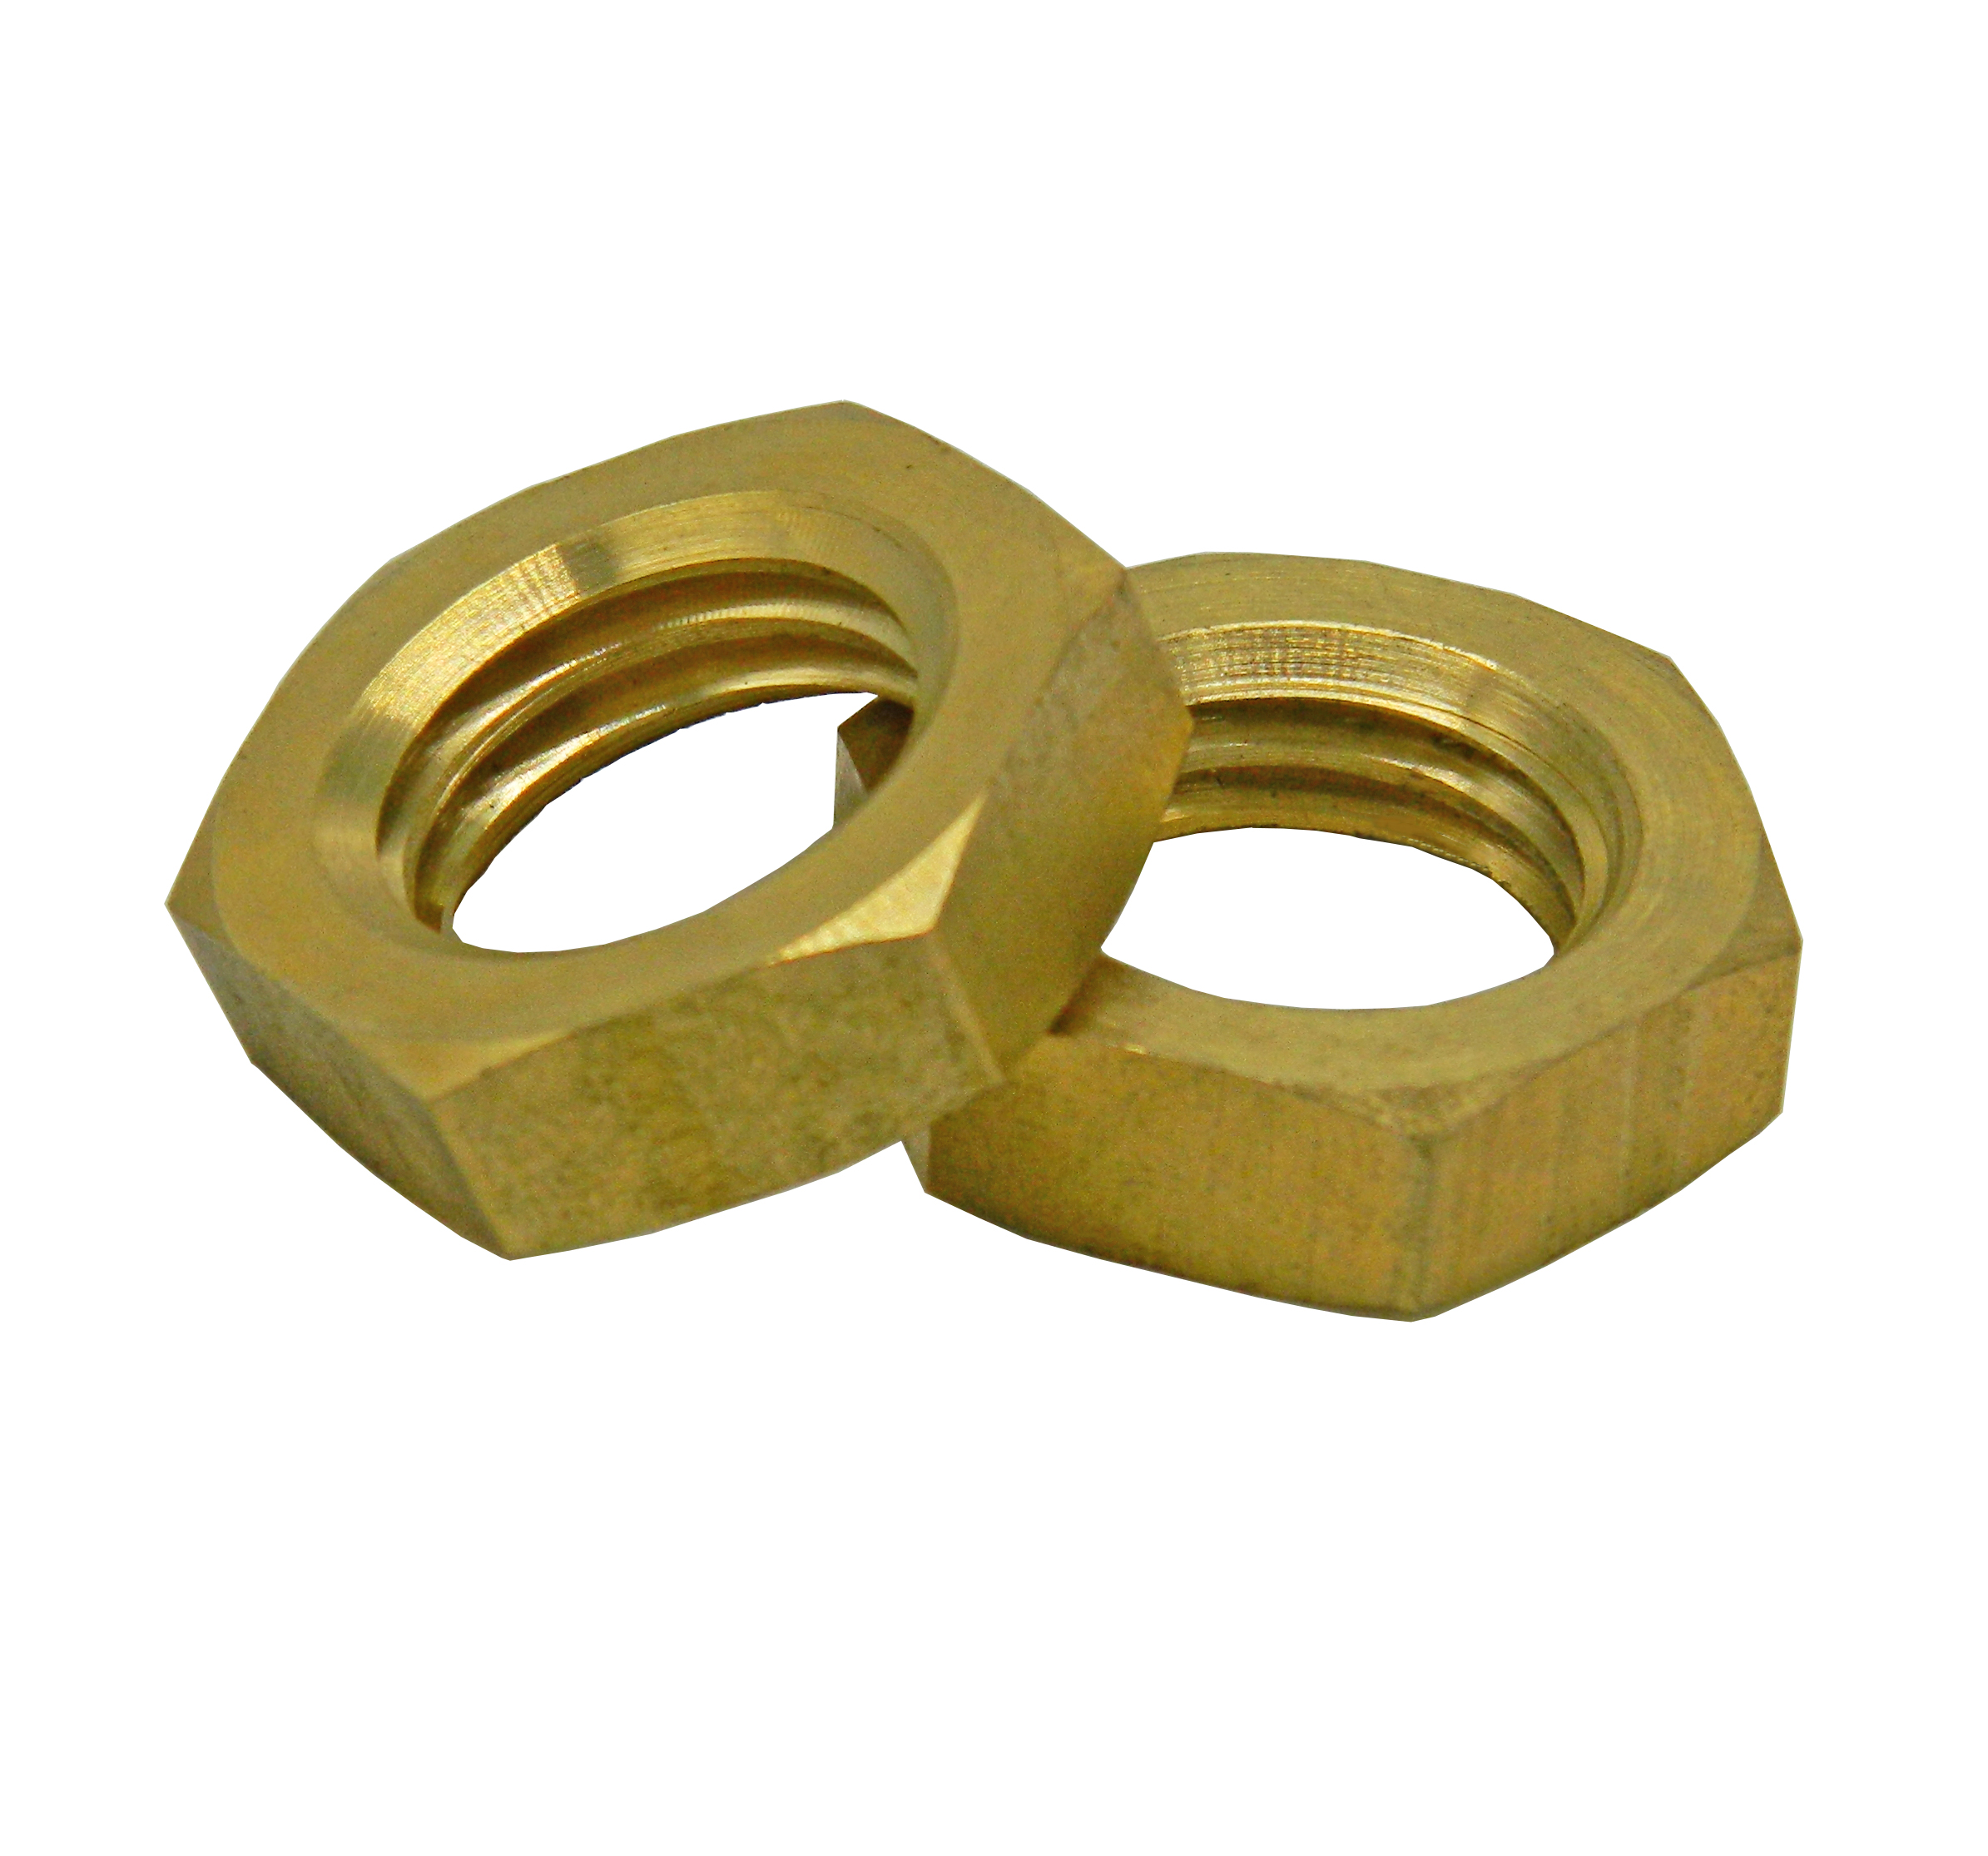 DIN 439 Brass Hex Thin Jam Nuts in Stock